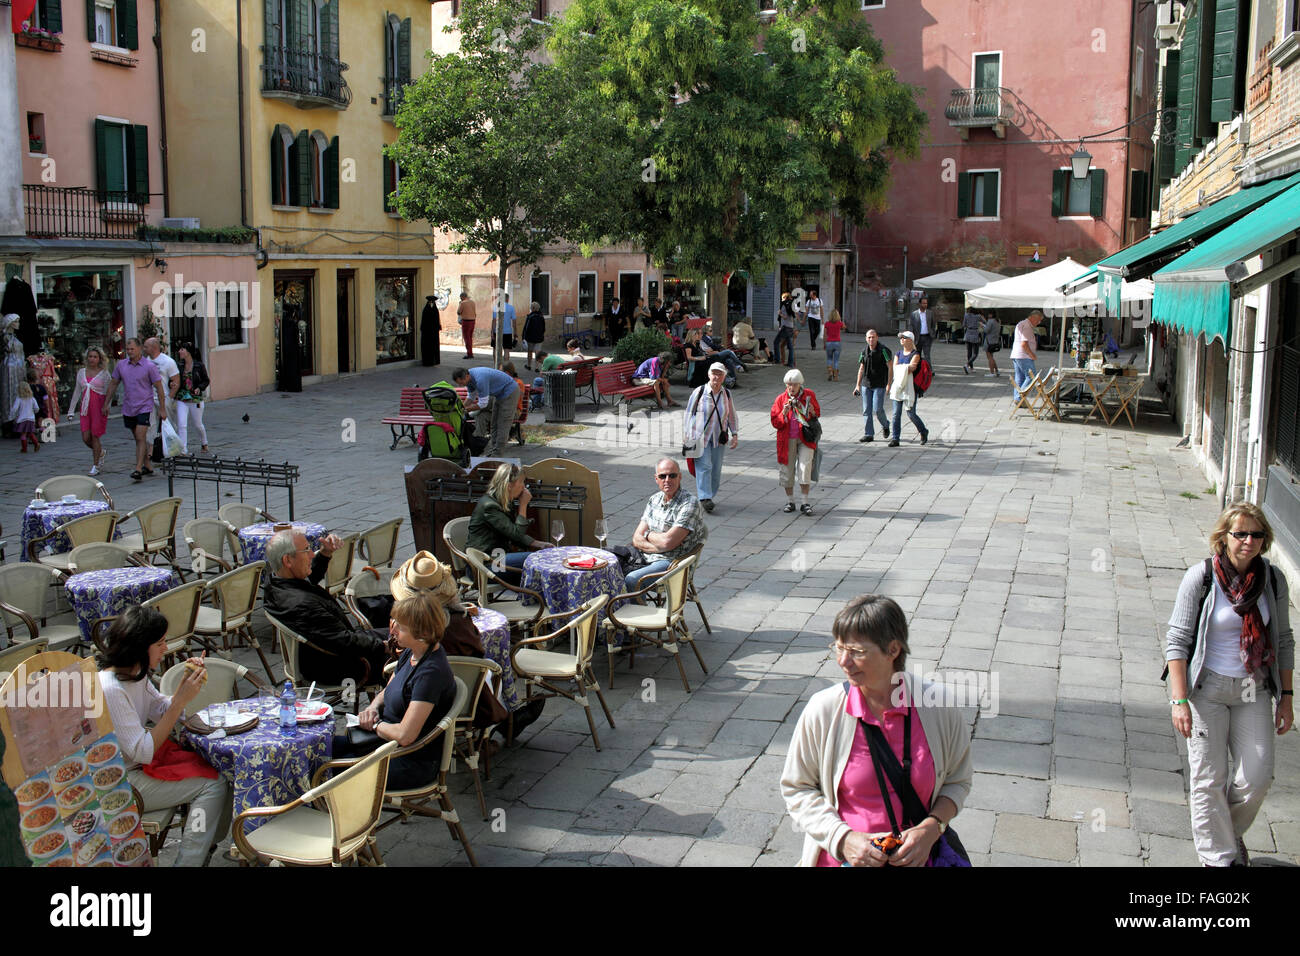 The convivial city: Campo Santa Maria Nova, a typical small square for sitting, eating and drinking, in traffic - Stock Image